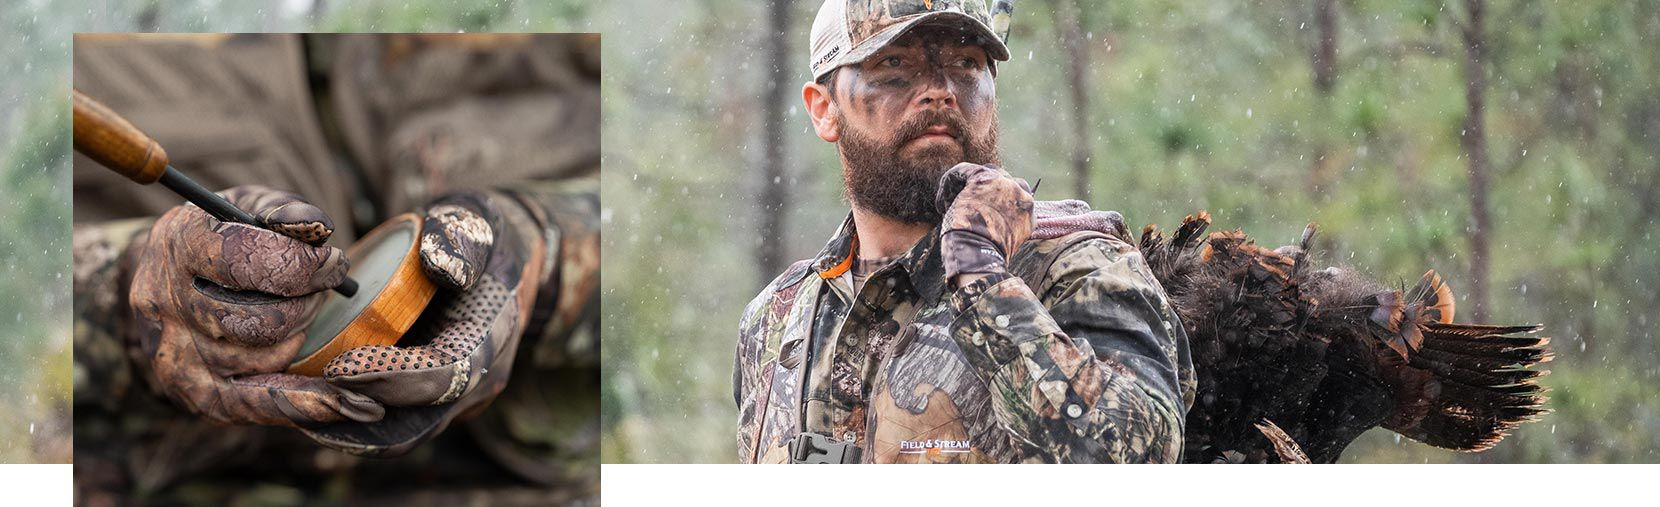 Pair of images showing a hunter holding a slate friction turkey call and a hunter wearing Realtree Camo jacket and hat while carrying a dead turkey